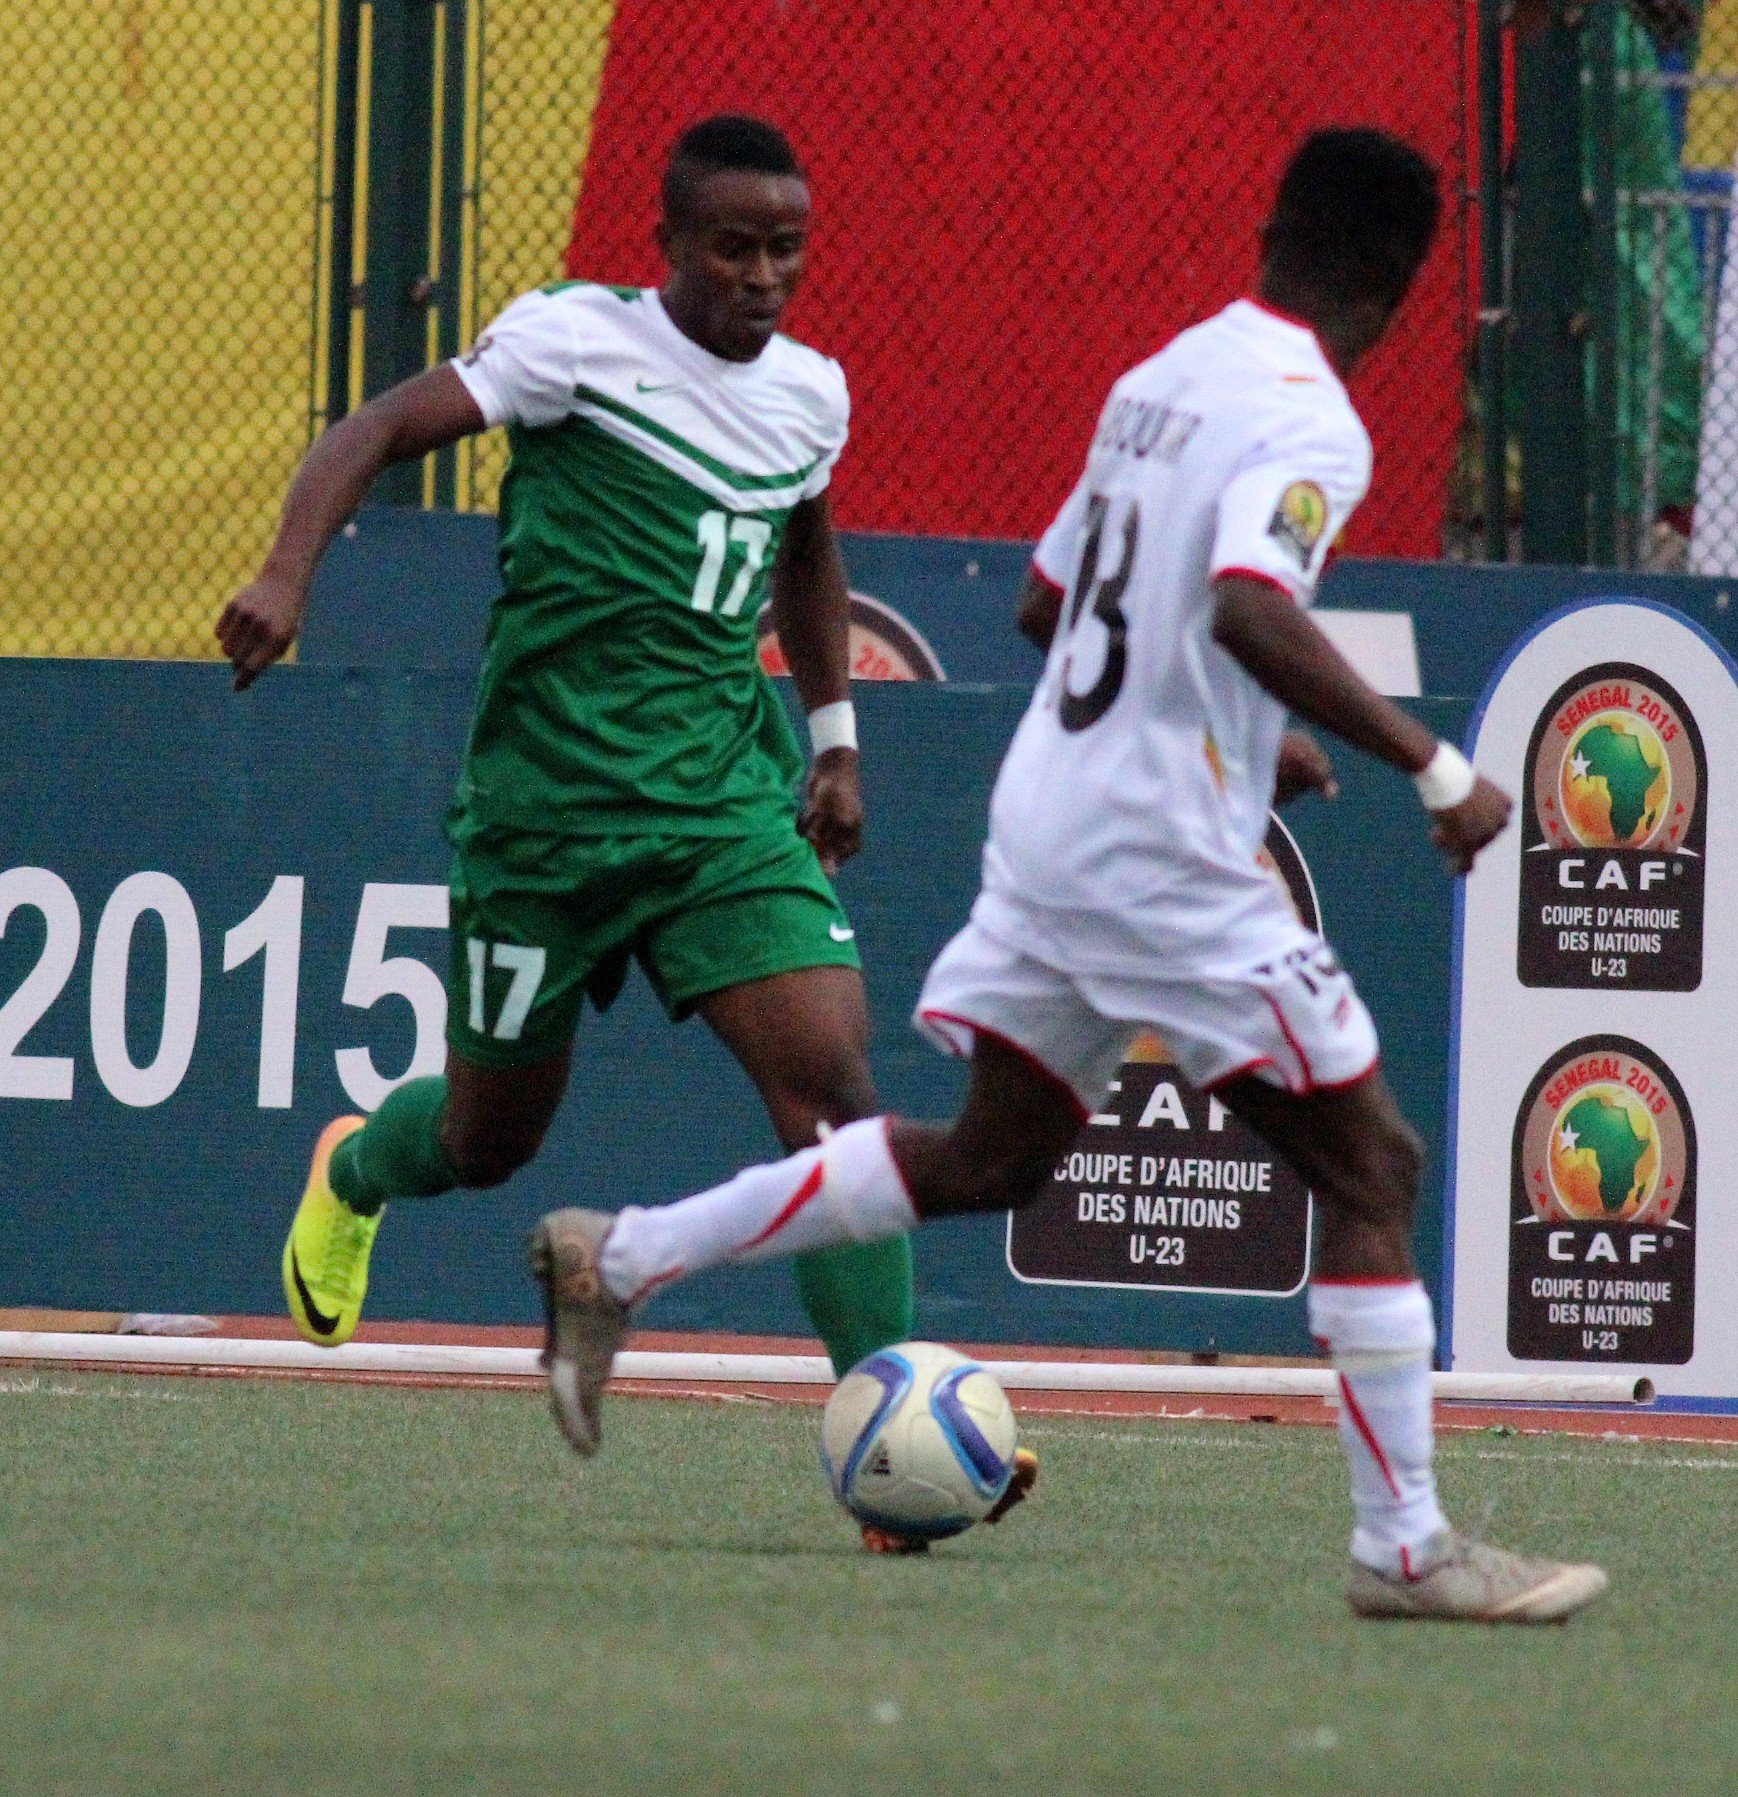 Senegal 3-1 Nigeria: Lions Dominate Eagles In Olympic Qualifiers Head-To-Head